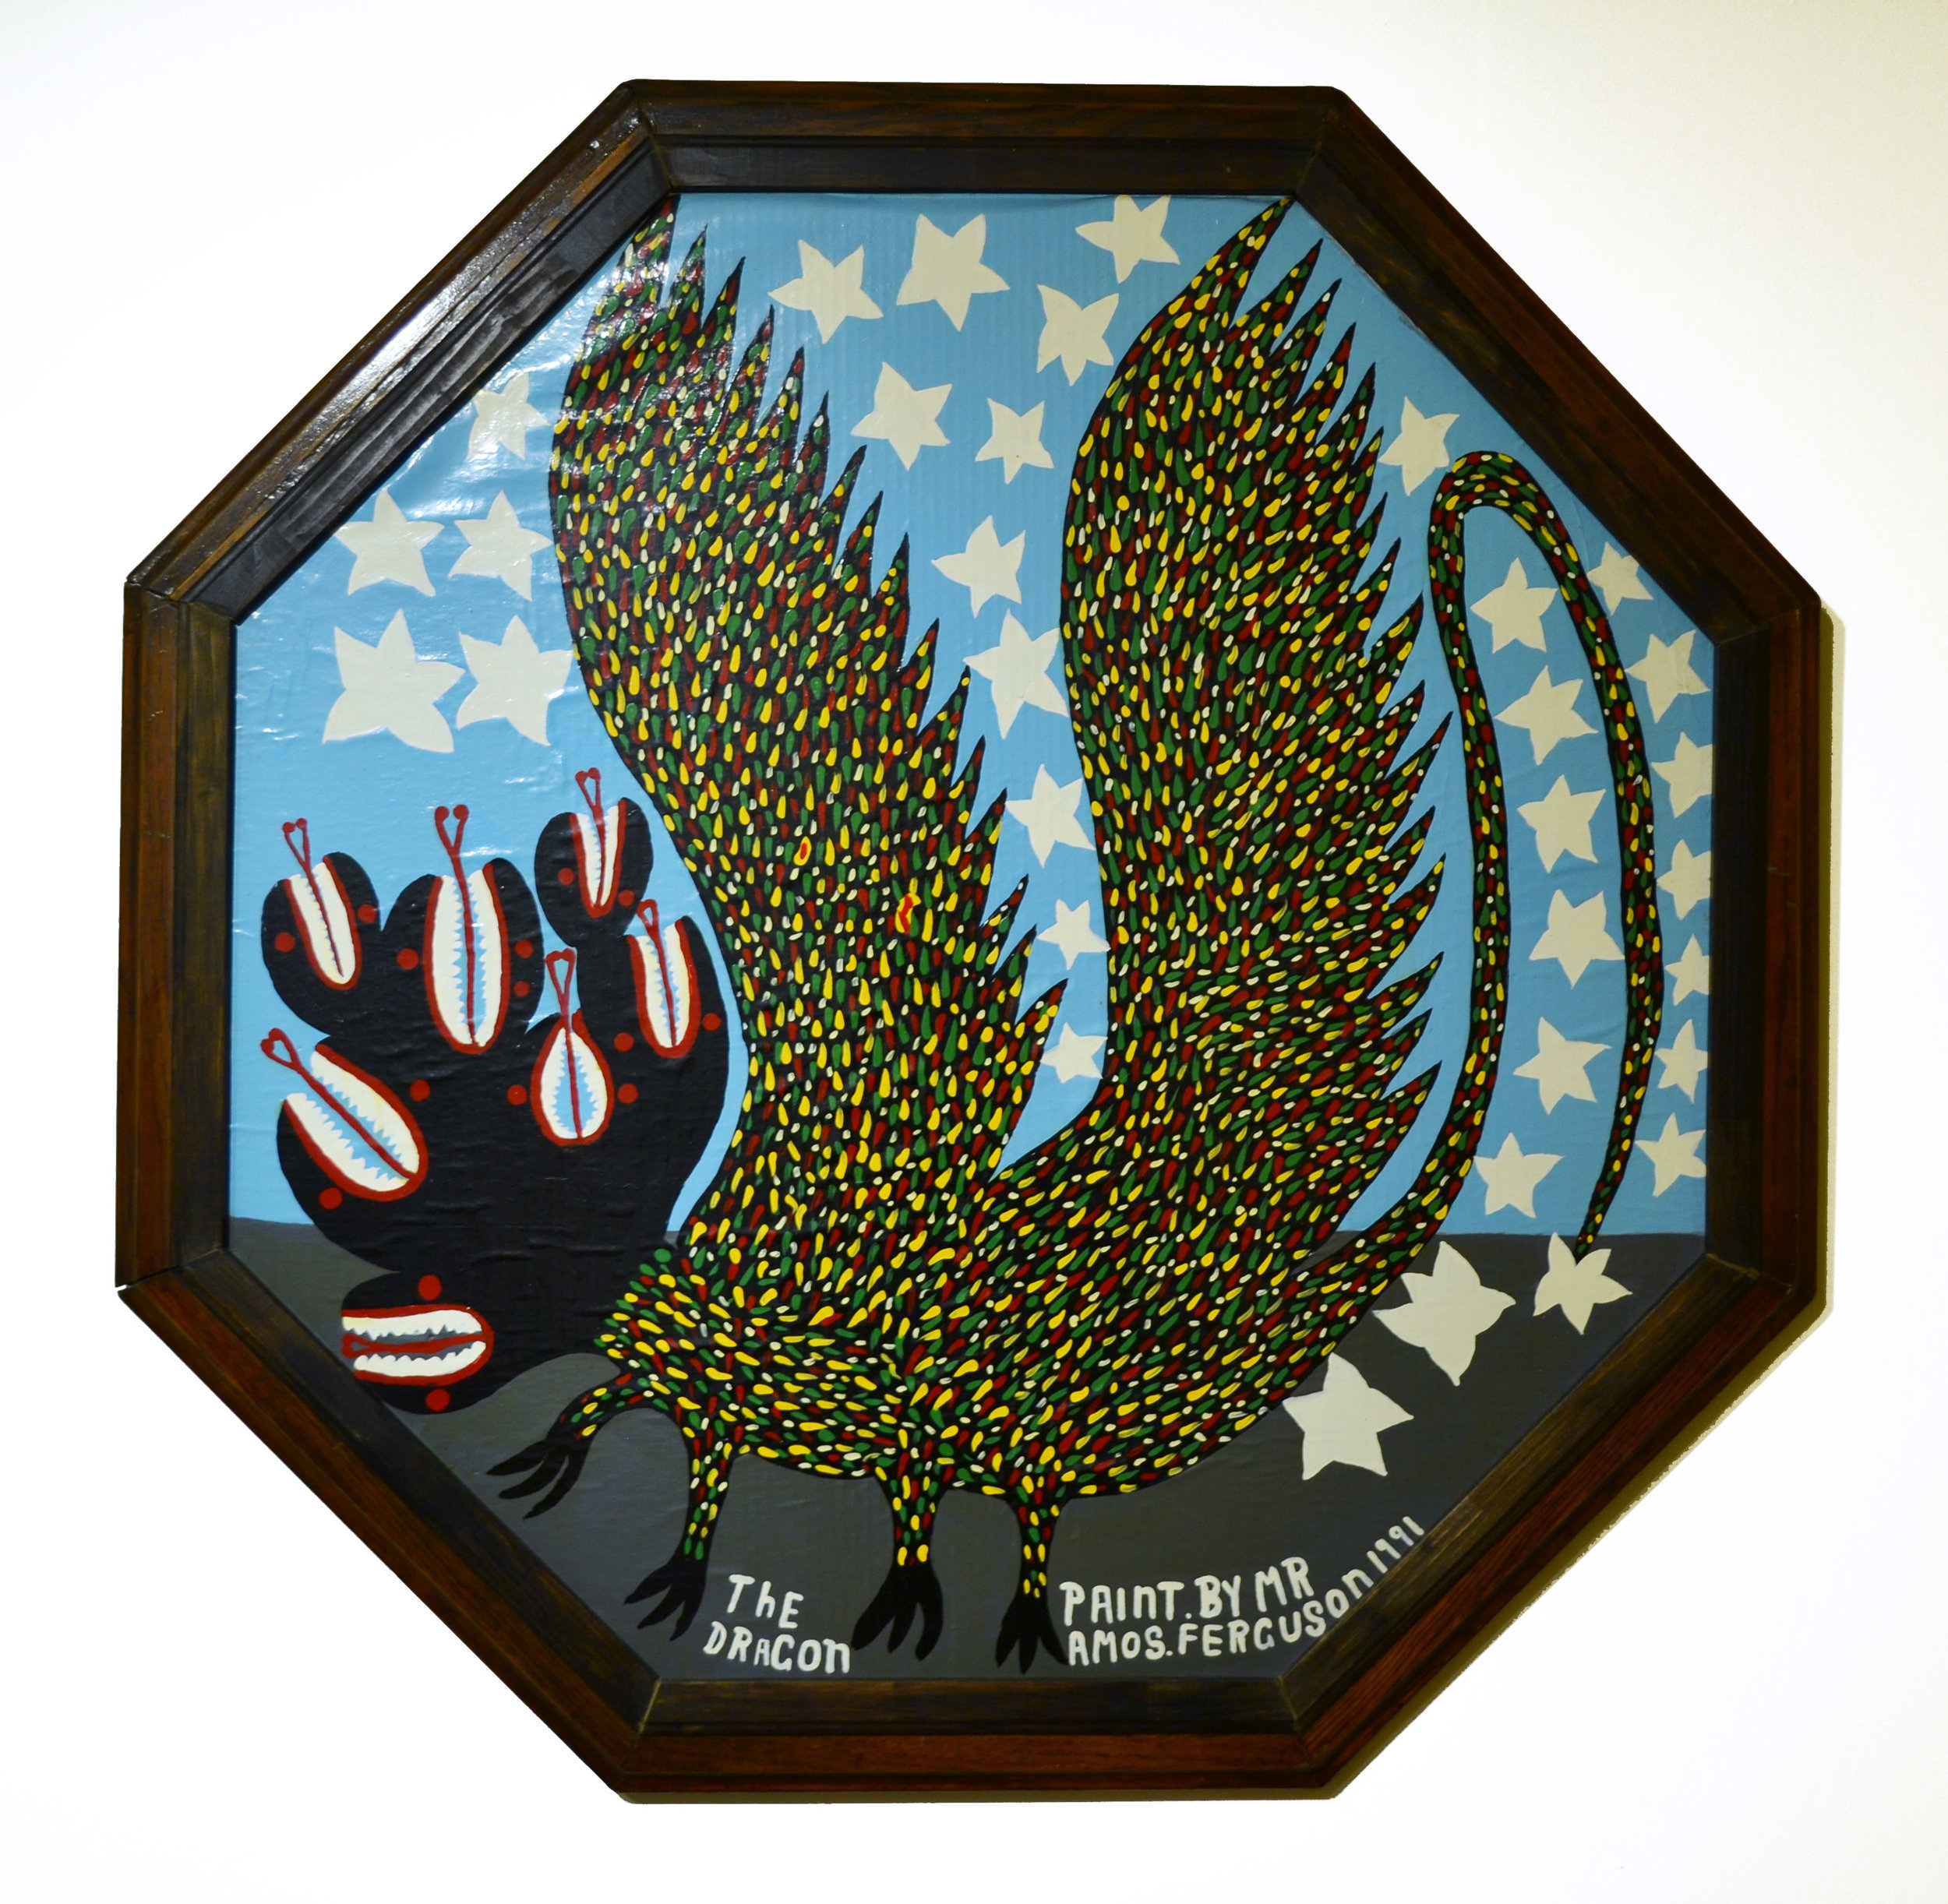 """""""The Dragon"""" (1991), Amos Ferguson, house paint on board, 36"""" diameter, The National Collection (Donated by the Ministry of Tourism). Image courtesy of the NAGB."""